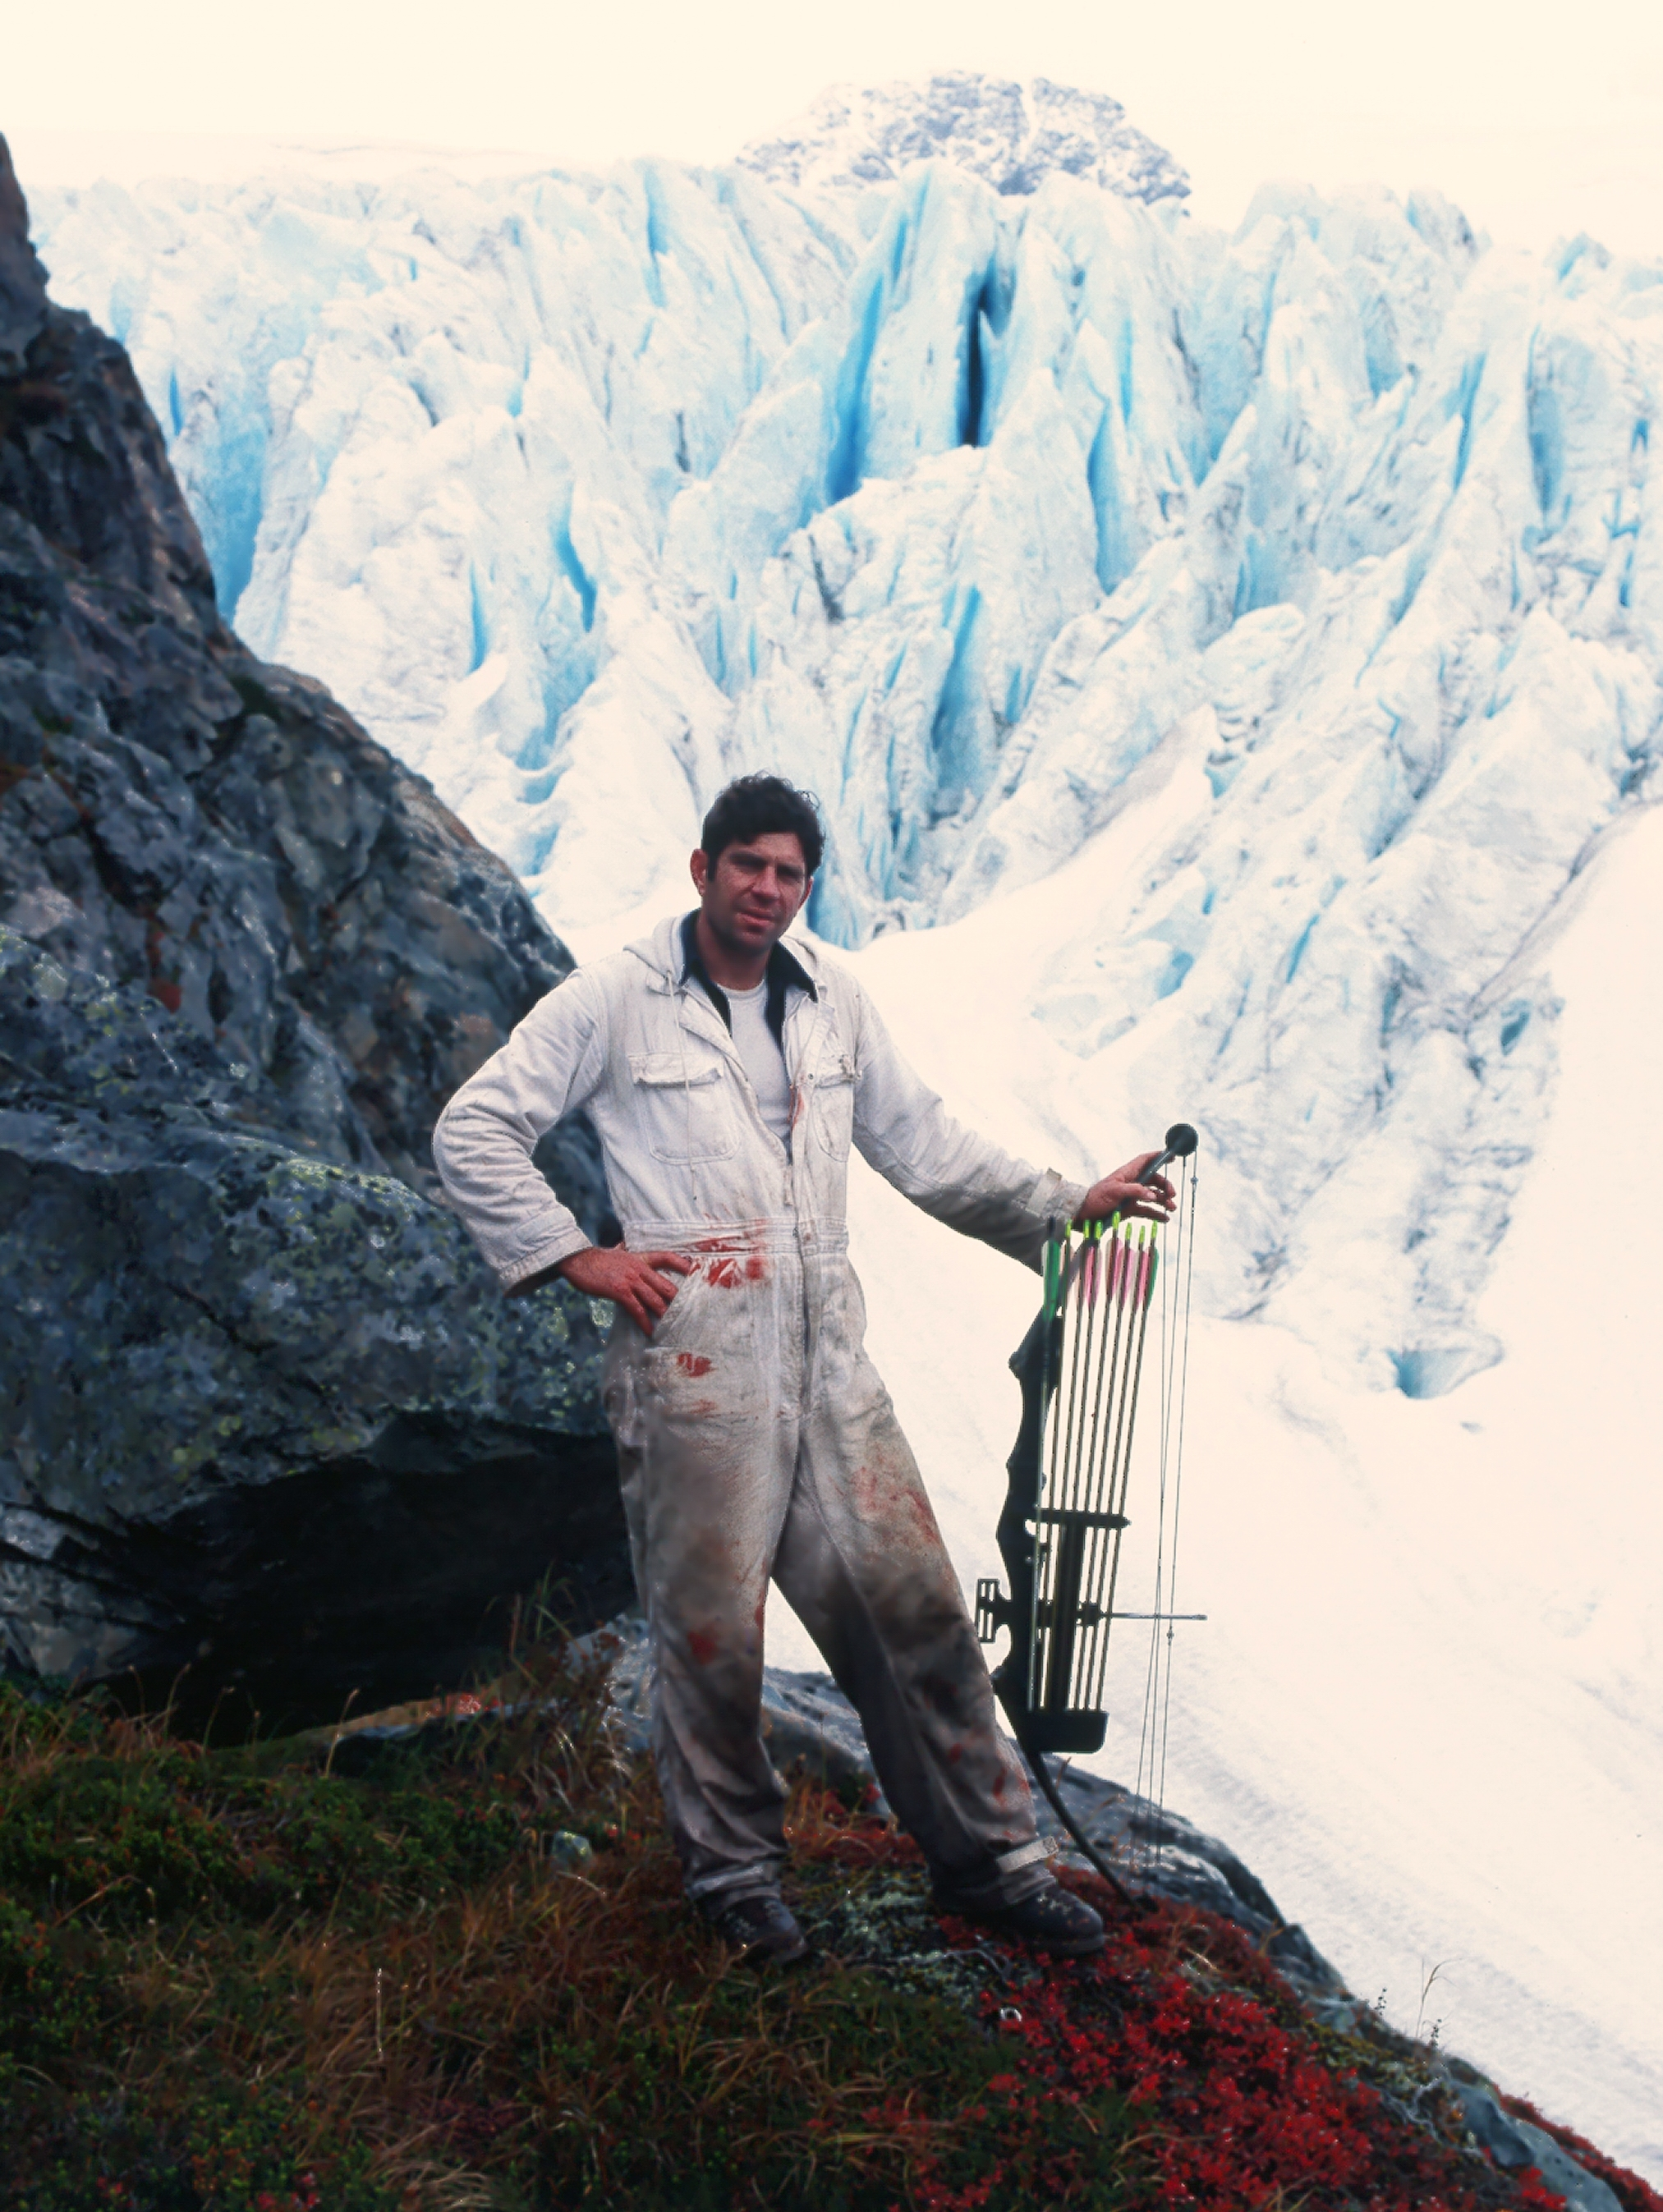 The background shows Trail Glacier that surrounds at least half of the second slope in the valley.